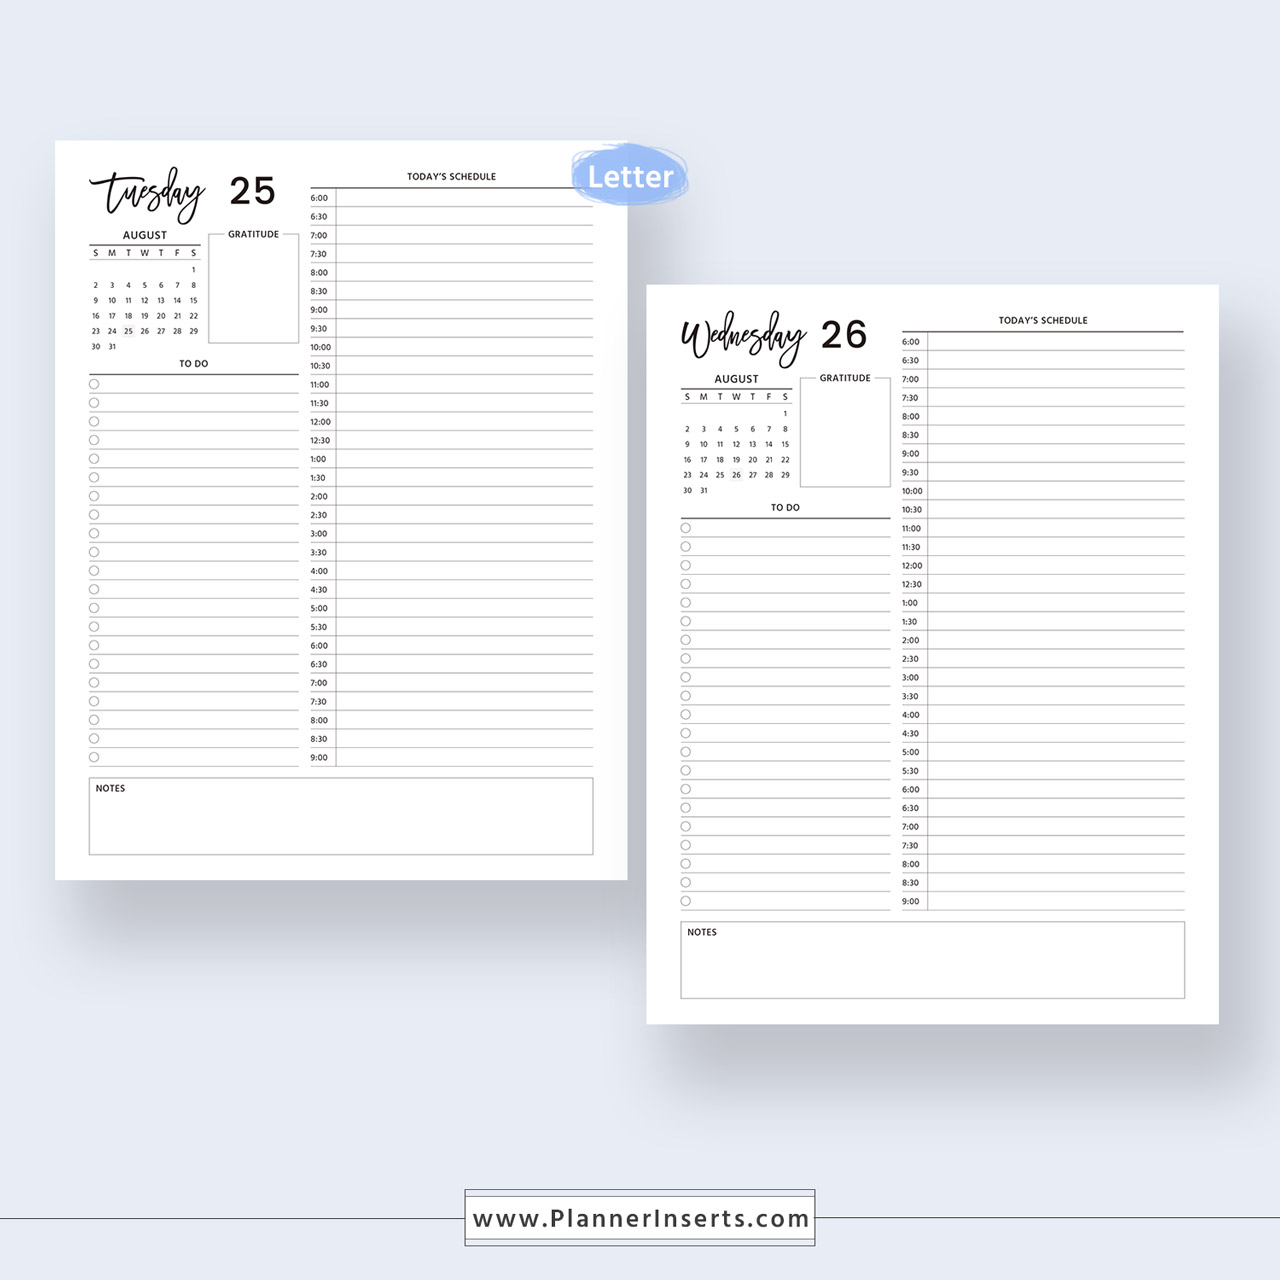 image regarding Digital Day Planner identified as 2019-2020 Dated Everyday Planner for Countless Fast Down load Electronic Printable Planner Inserts in just .PDF Layout A4 Letter Sizing Day by day Organizer,